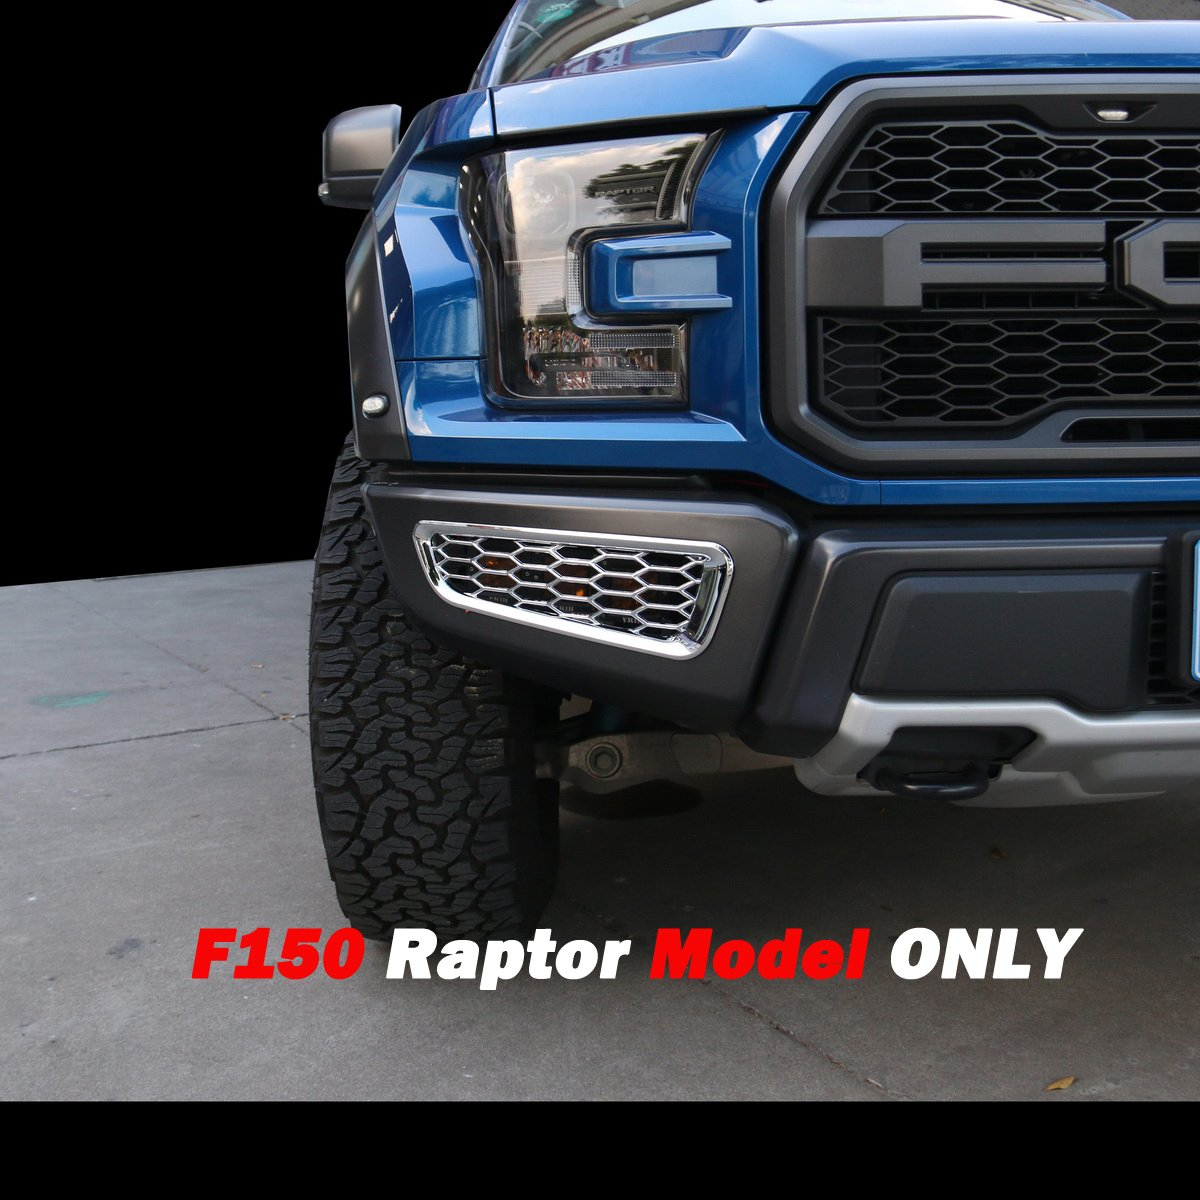 Front Fog Vent Black Justautotrim Honeycomb Front Bumper Bottom Fog Vent /& Side Fender /& Headlgiht Chrome Cover Trim for 2016 2017 2018 Ford F150 Raptor Accessories